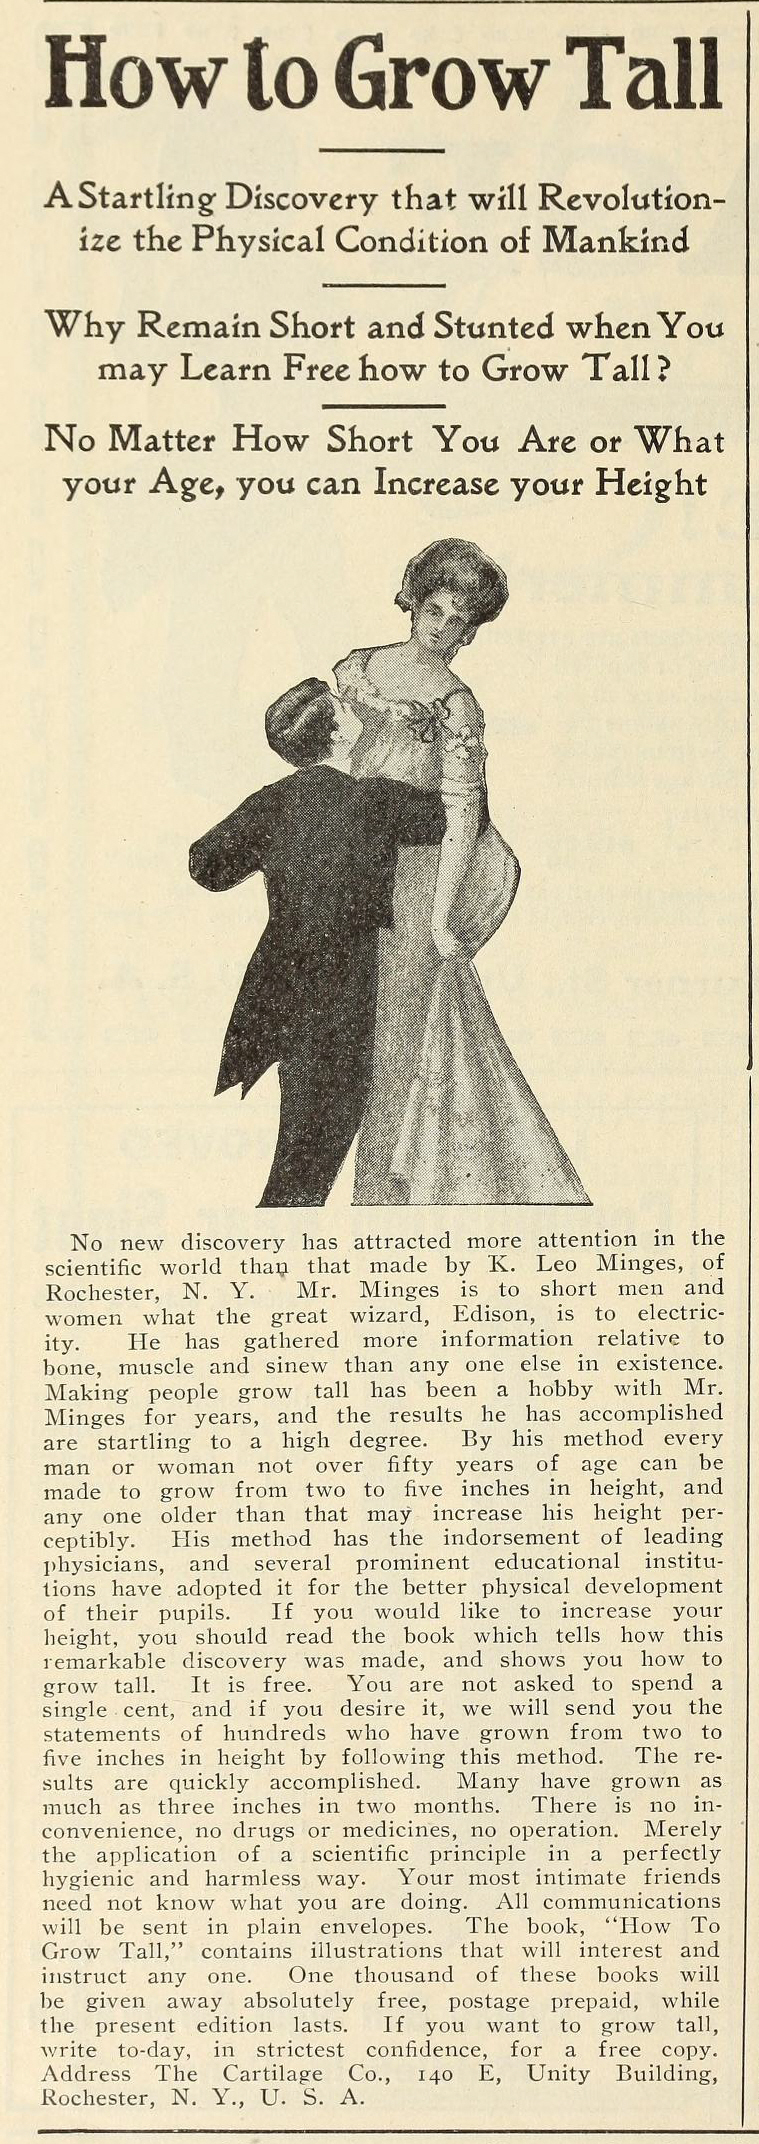 The Cartilage Company, from 'Recreation', Feb 1906